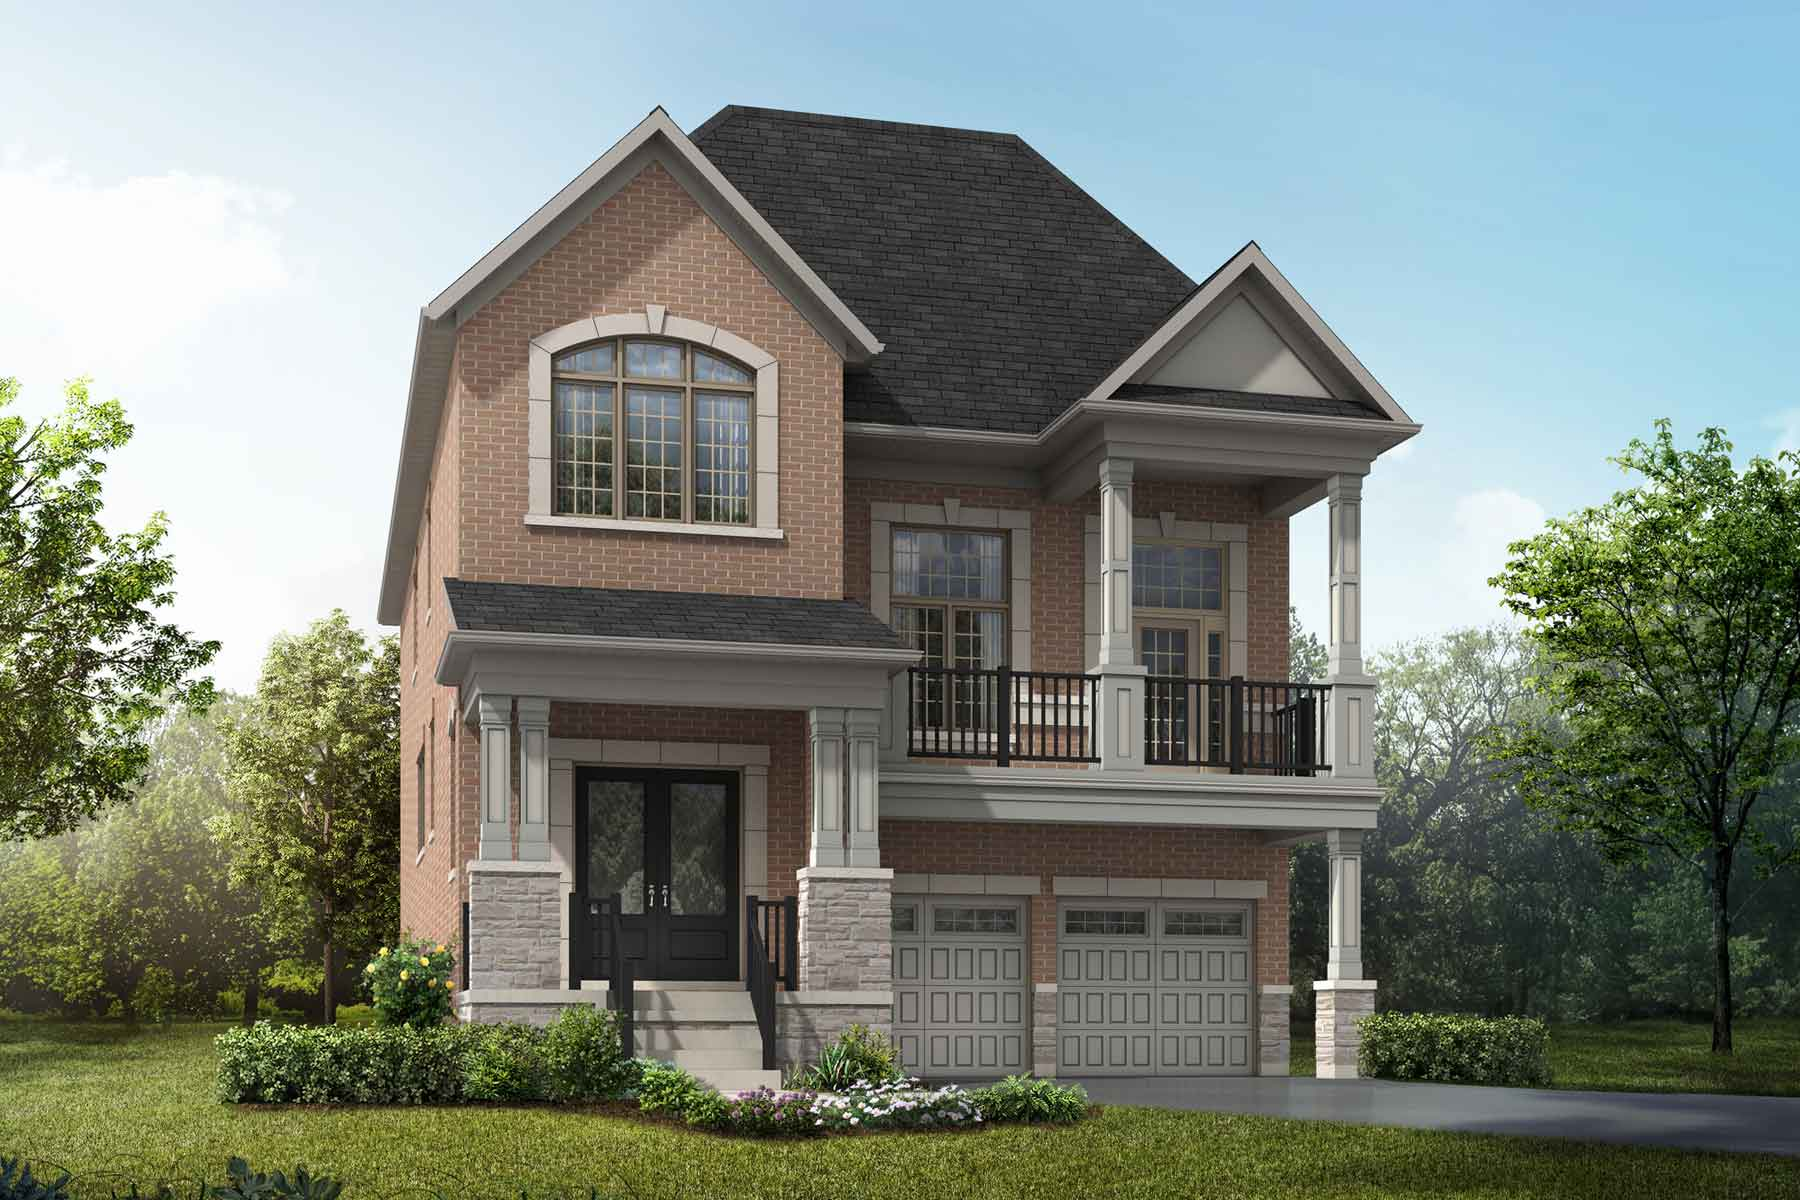 Orchid Plan traditional_springwater_orchid at Springwater in Markham Ontario by Mattamy Homes